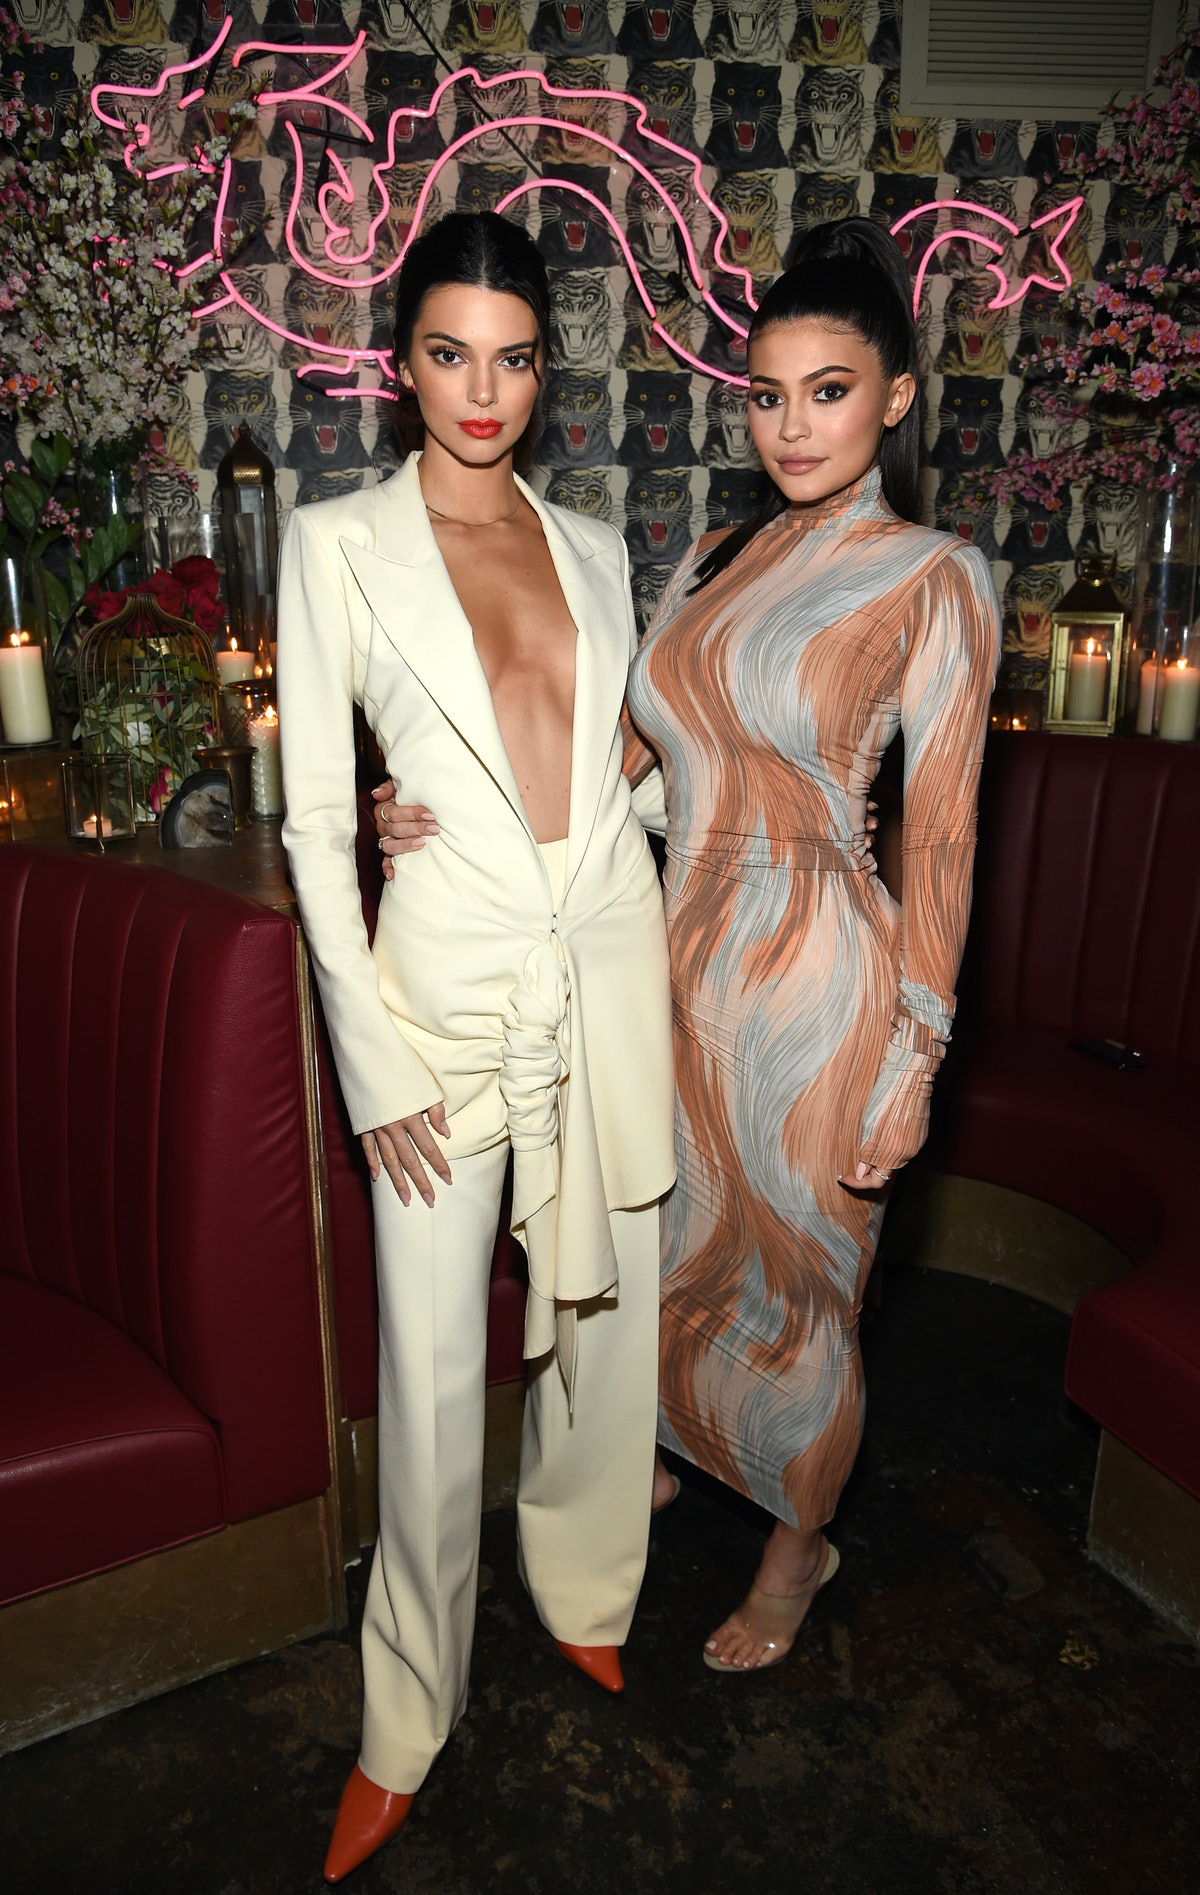 Kendall and Kylie Jenner pose for a photo.